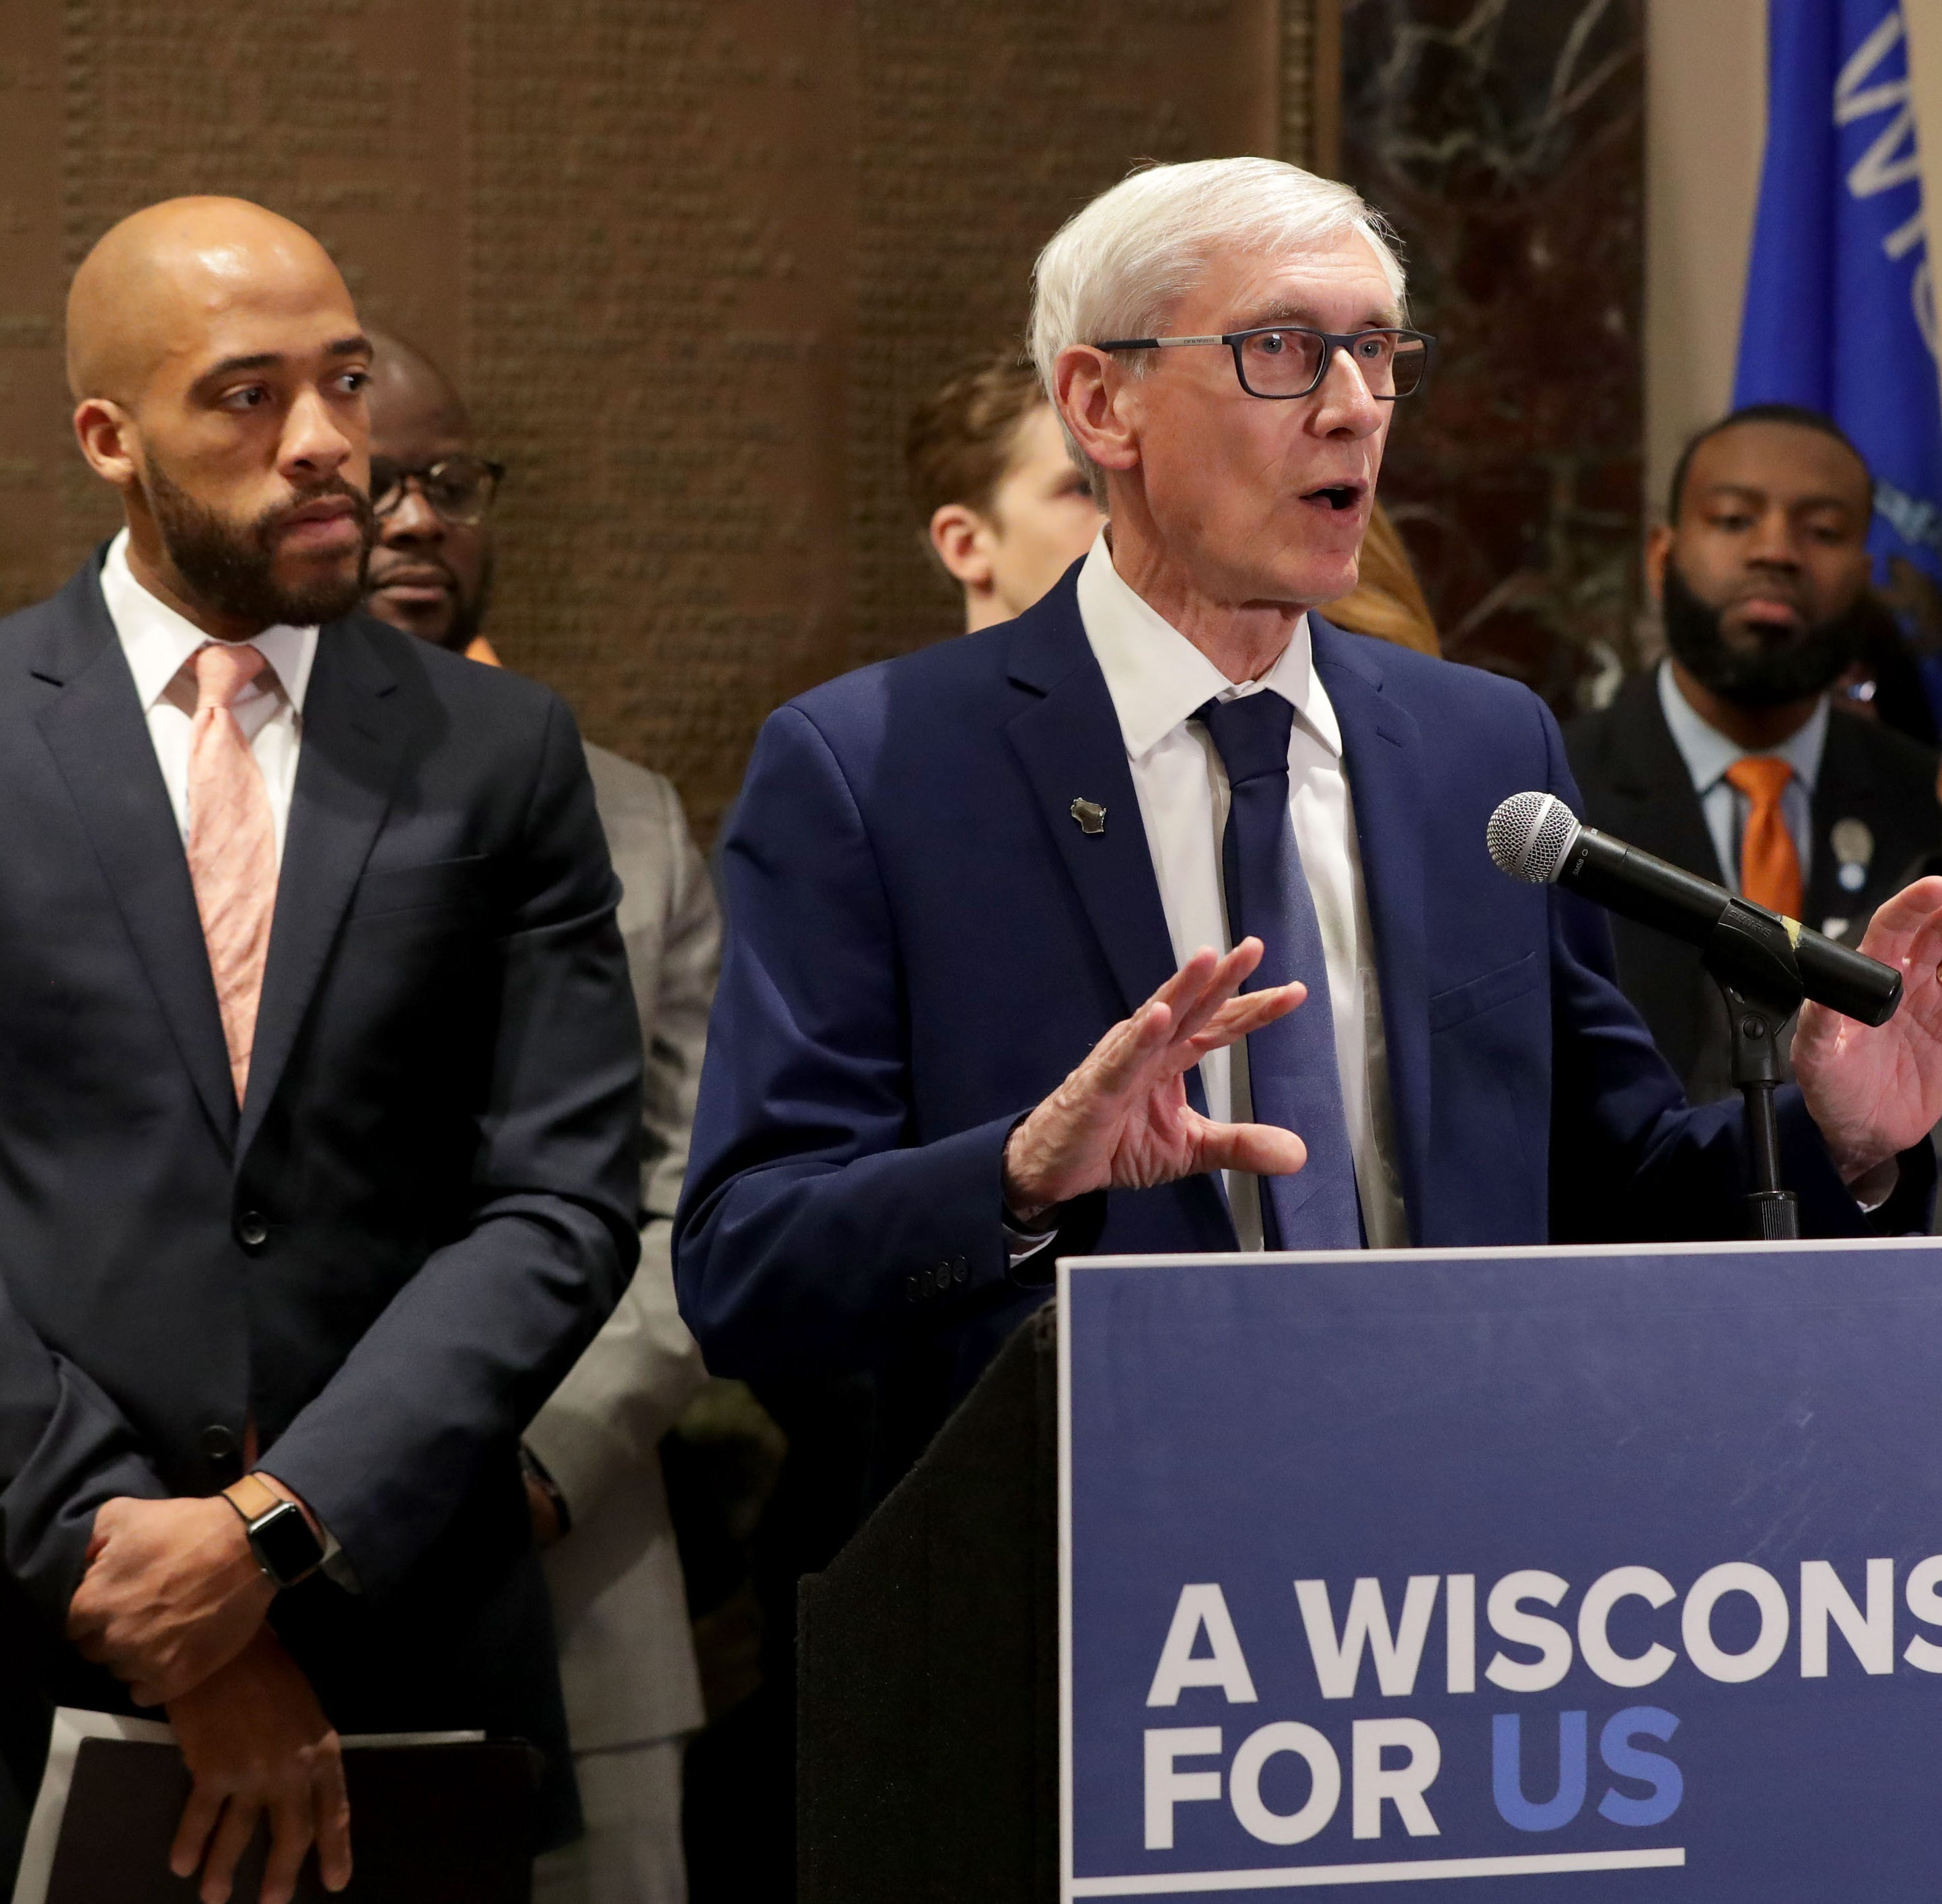 Tony Evers says he's not giving up on Obamacare expansion, slams Republicans over campaign fundraiser